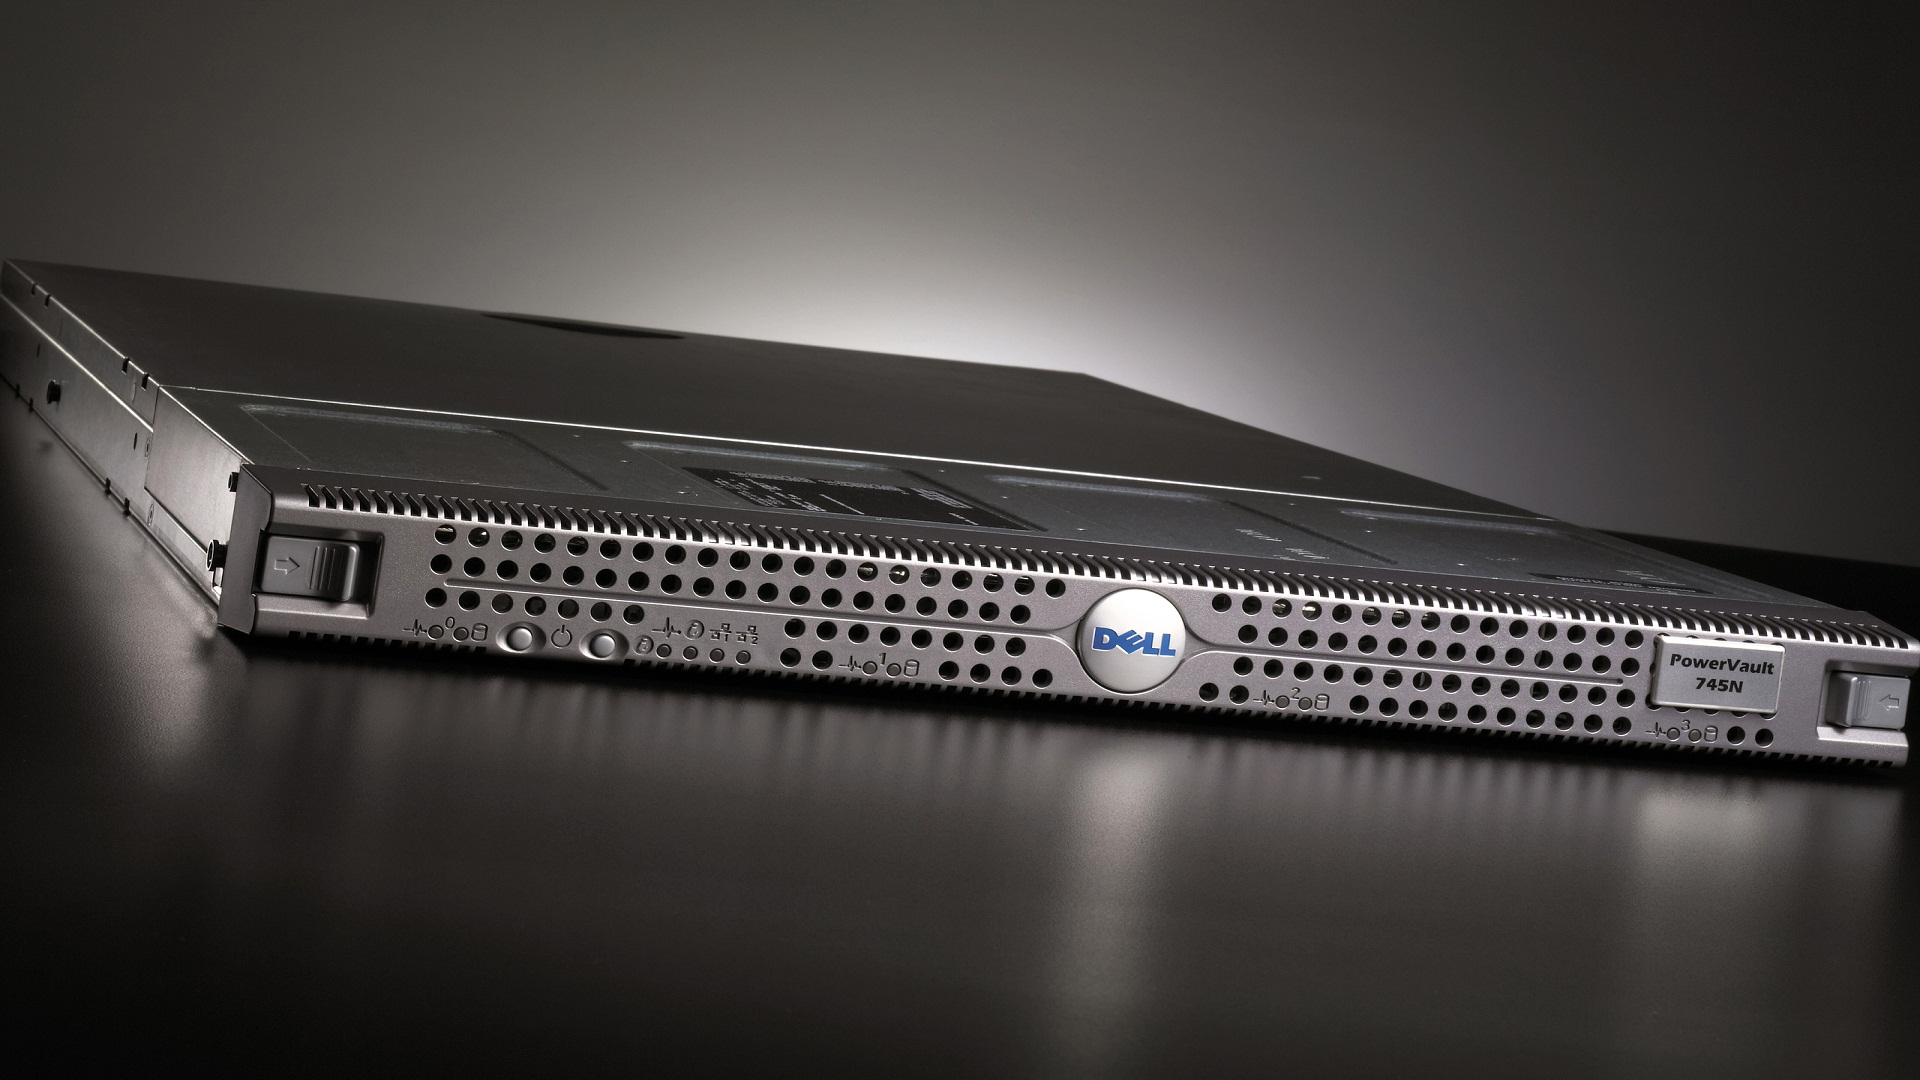 dell power vault server hd wallpaper   Background Wallpapers for your 1920x1080